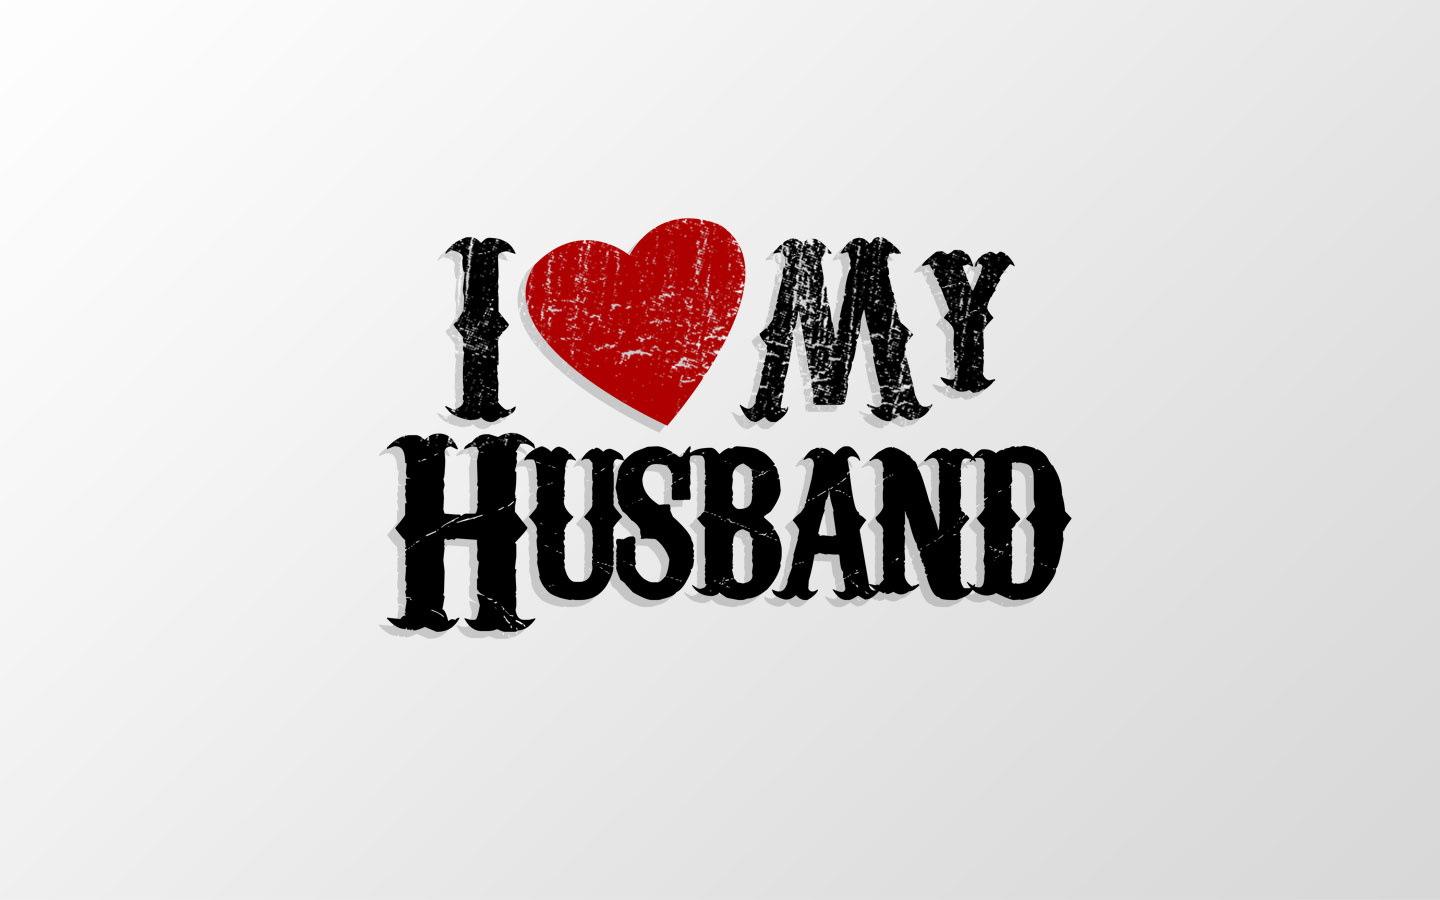 I Love You Wallpaper For Husband : I Love My Husband Wallpaper - christian Wallpapers and Backgrounds